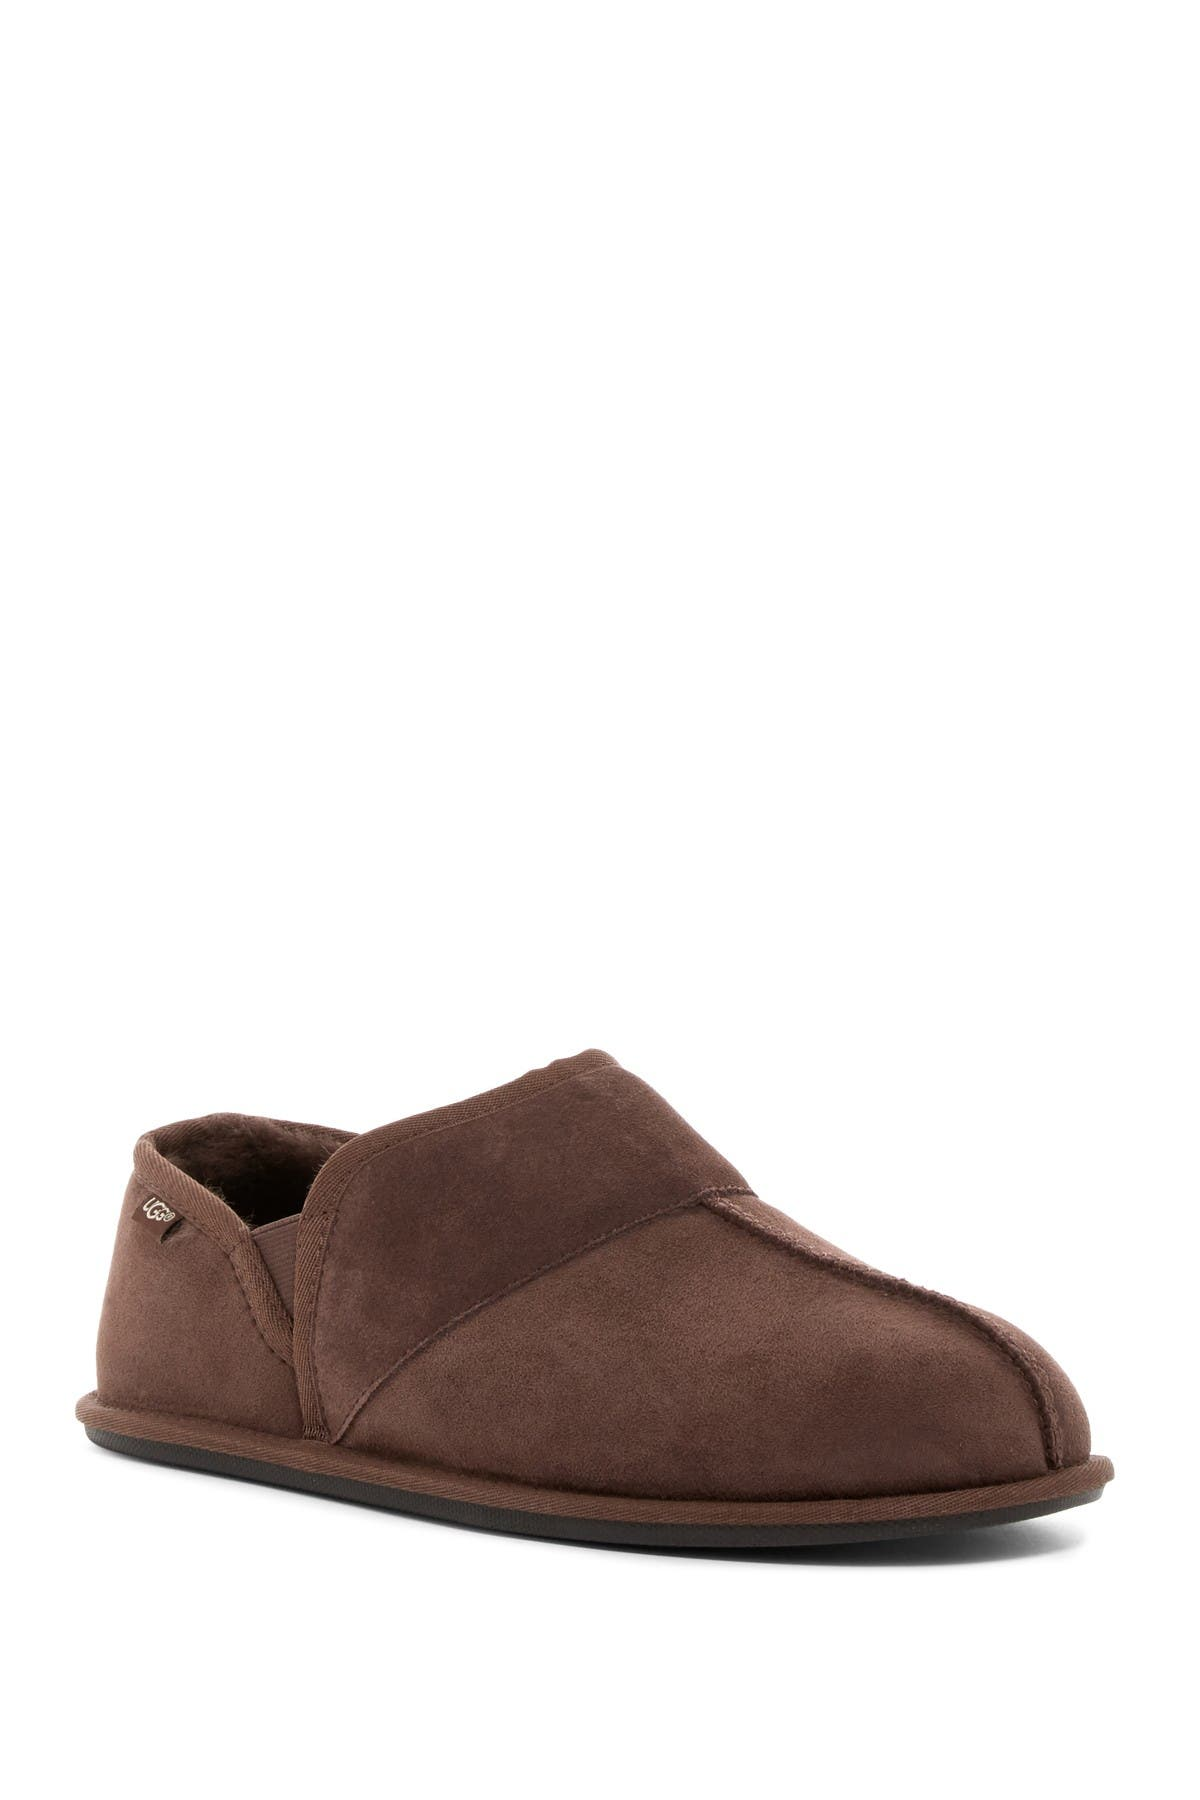 Image of UGG Leisure Suede UGGpure™ Lined Slipper